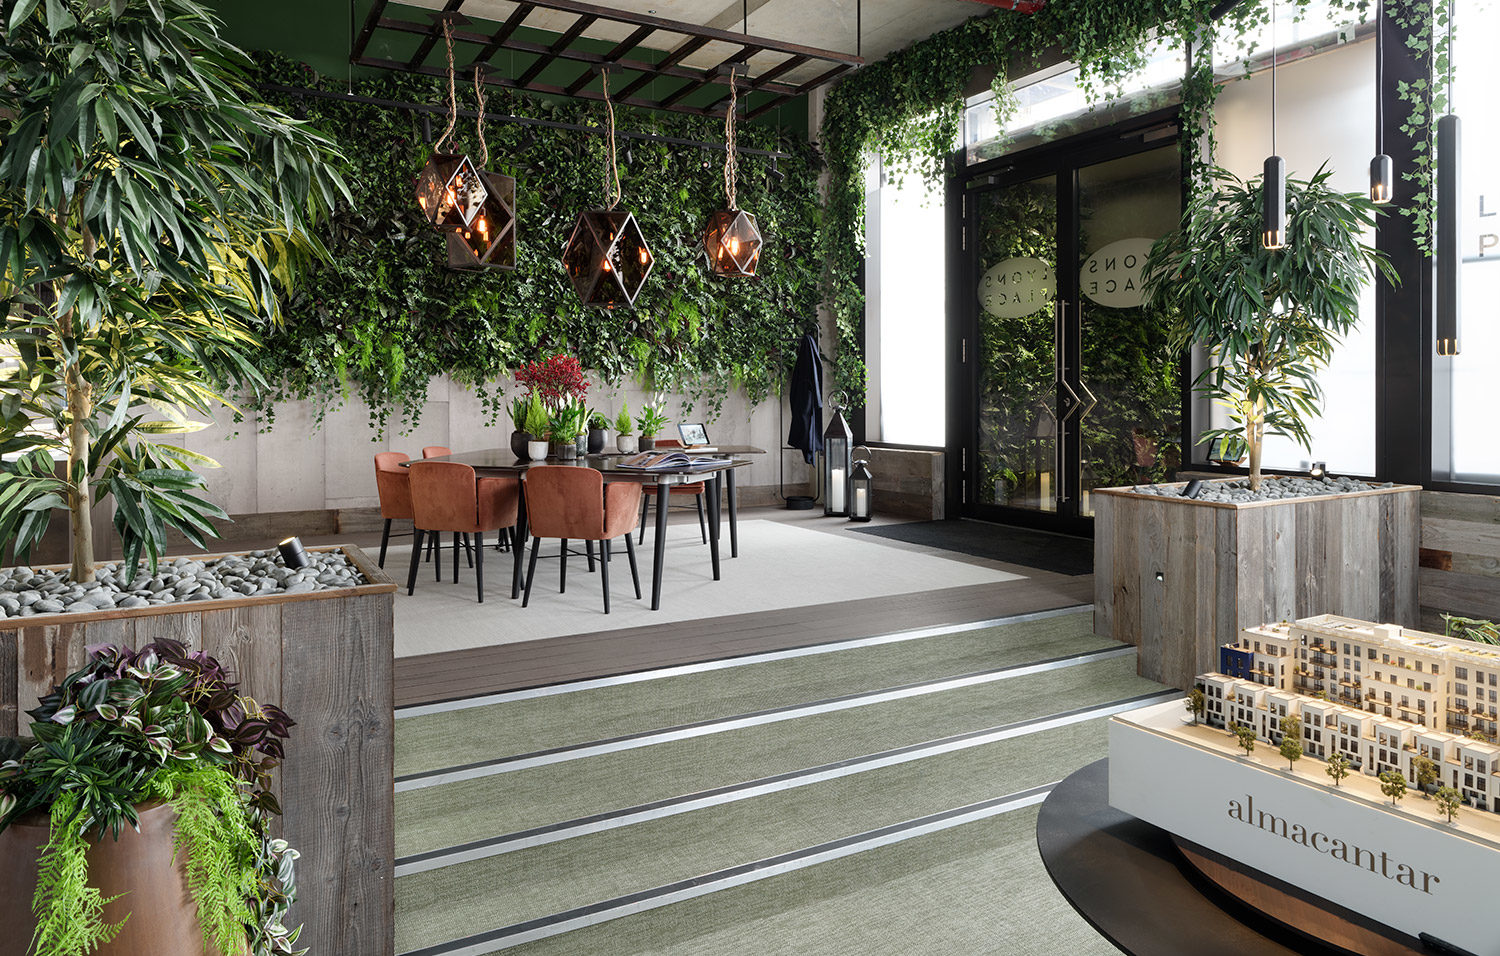 Meet Tollgard Design Group And Their Stunning Projects meet tollgard design group Meet Tollgard Design Group And Their Stunning Projects LyonsPlace 004 lowres e1560261921518